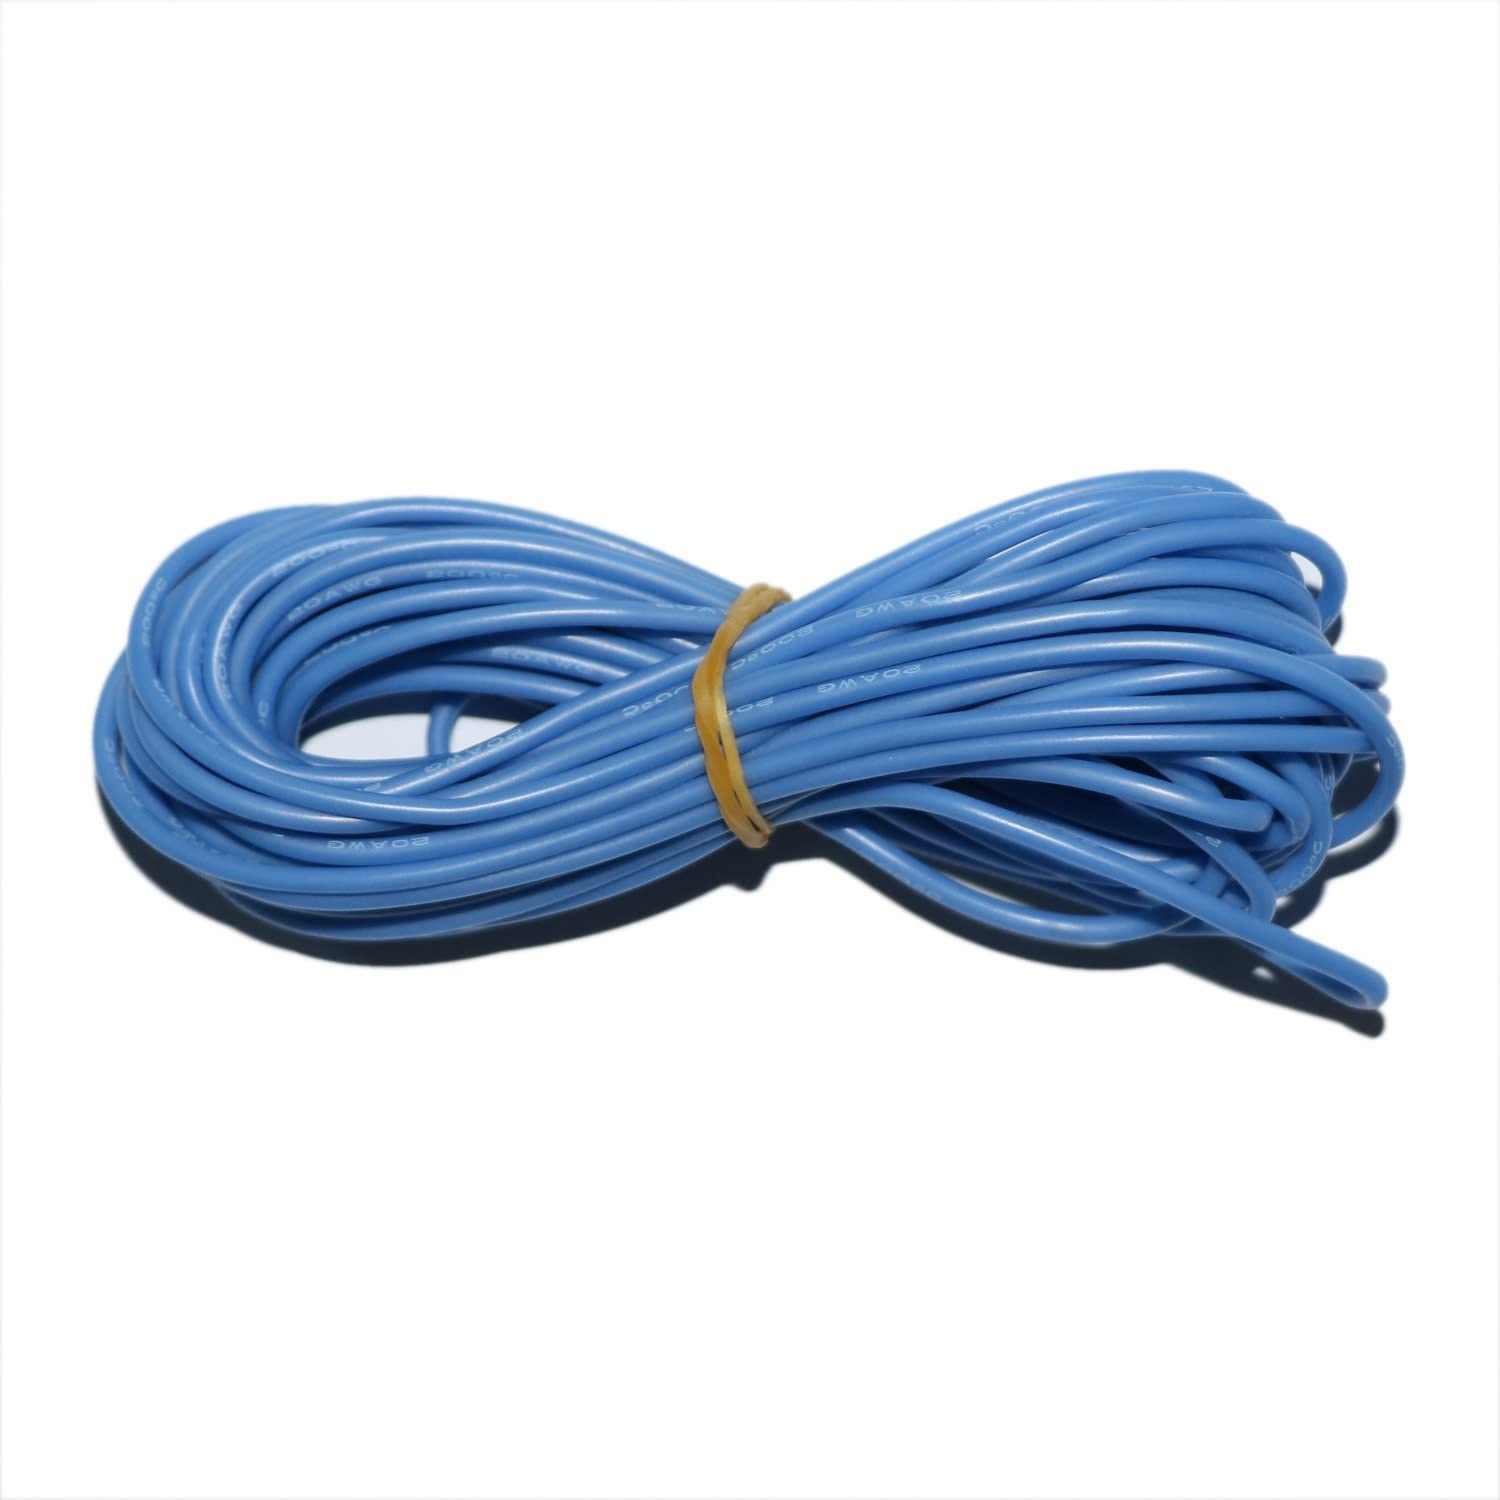 Flexible Silicone Red//Green//Blue//Yellow//Black Electrical Wire Cable 30-18 awg